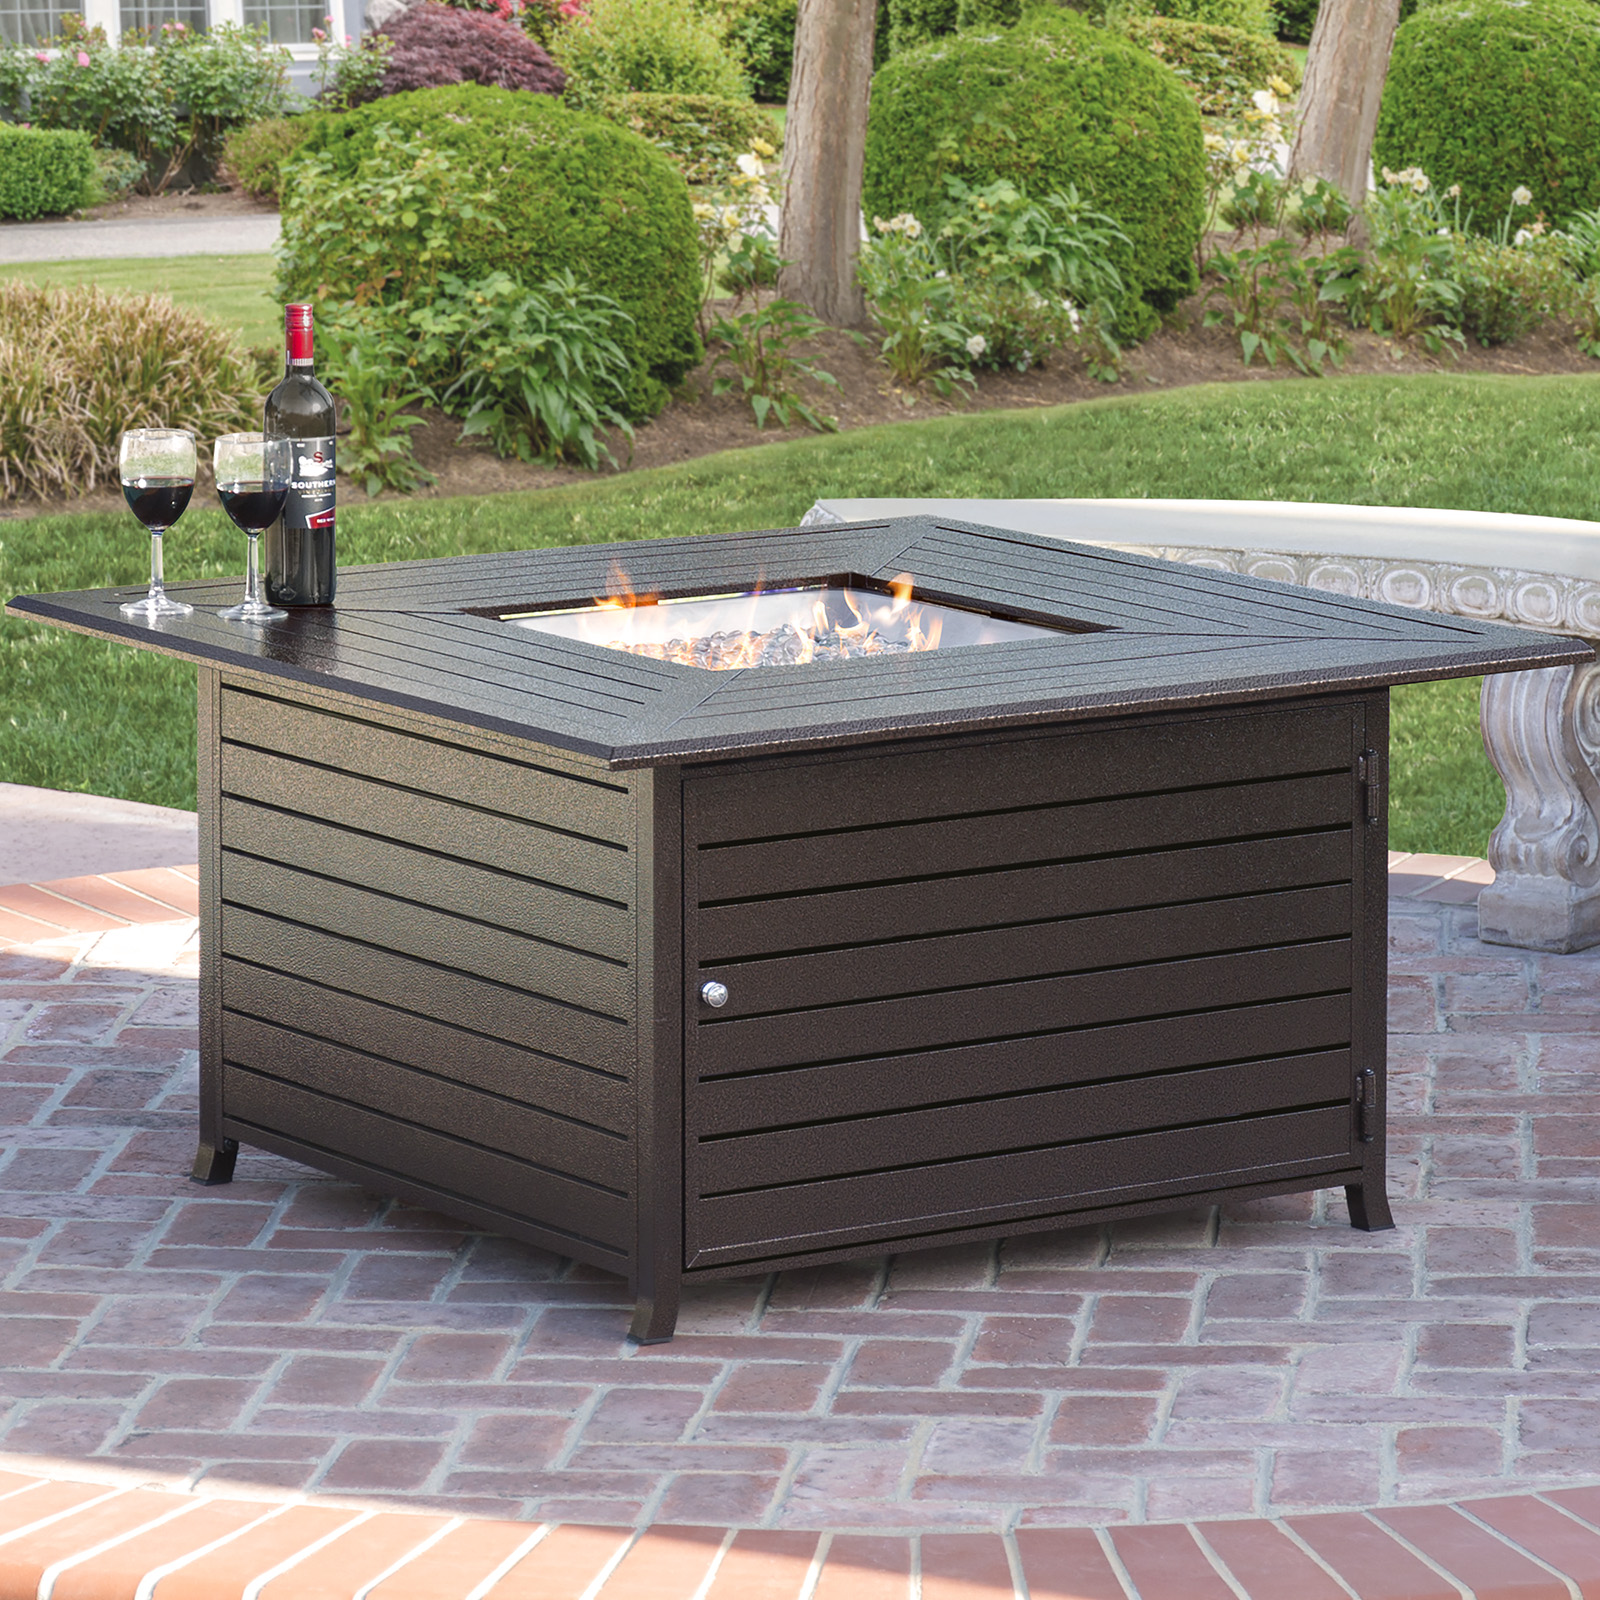 Best Choice Products 45x45in Extruded Aluminum Square Gas Fire Pit Table for Outdoor Patio w/ Weather Cover Lid Propane Tank Storage ... & Best Choice Products 45x45in Extruded Aluminum Square Gas Fire Pit ...